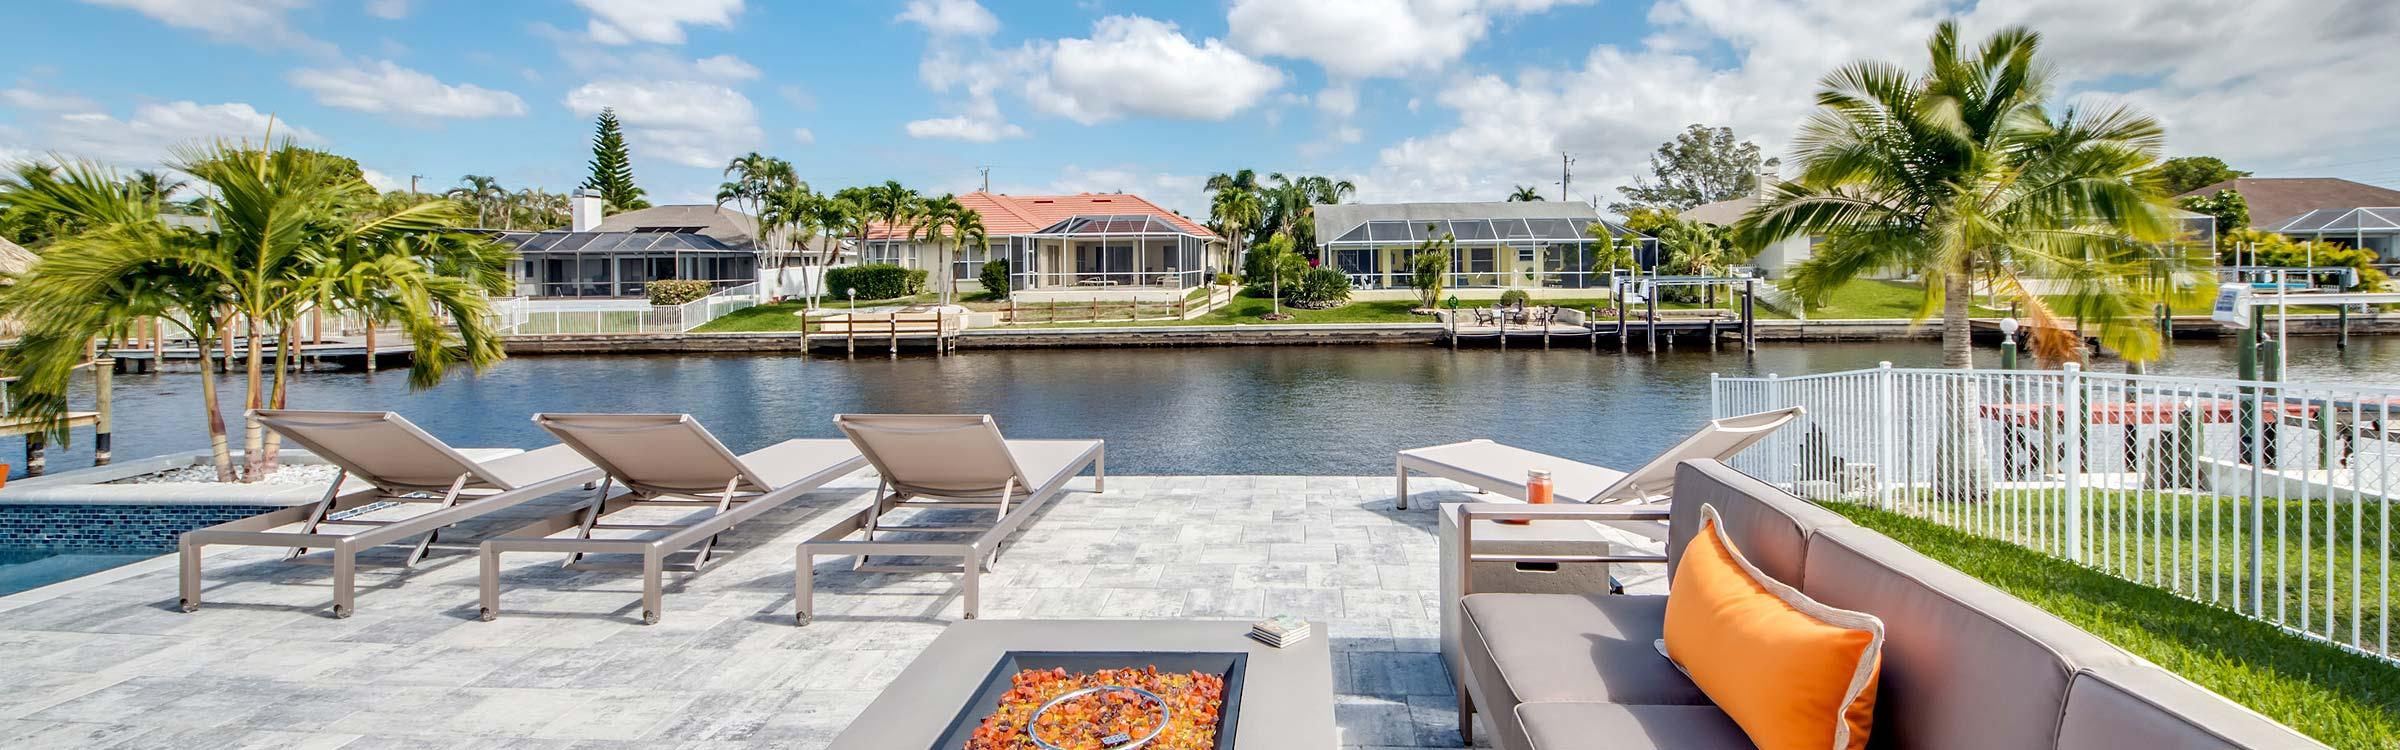 Rent Vacation Homes in Florida | NMB Florida Realty